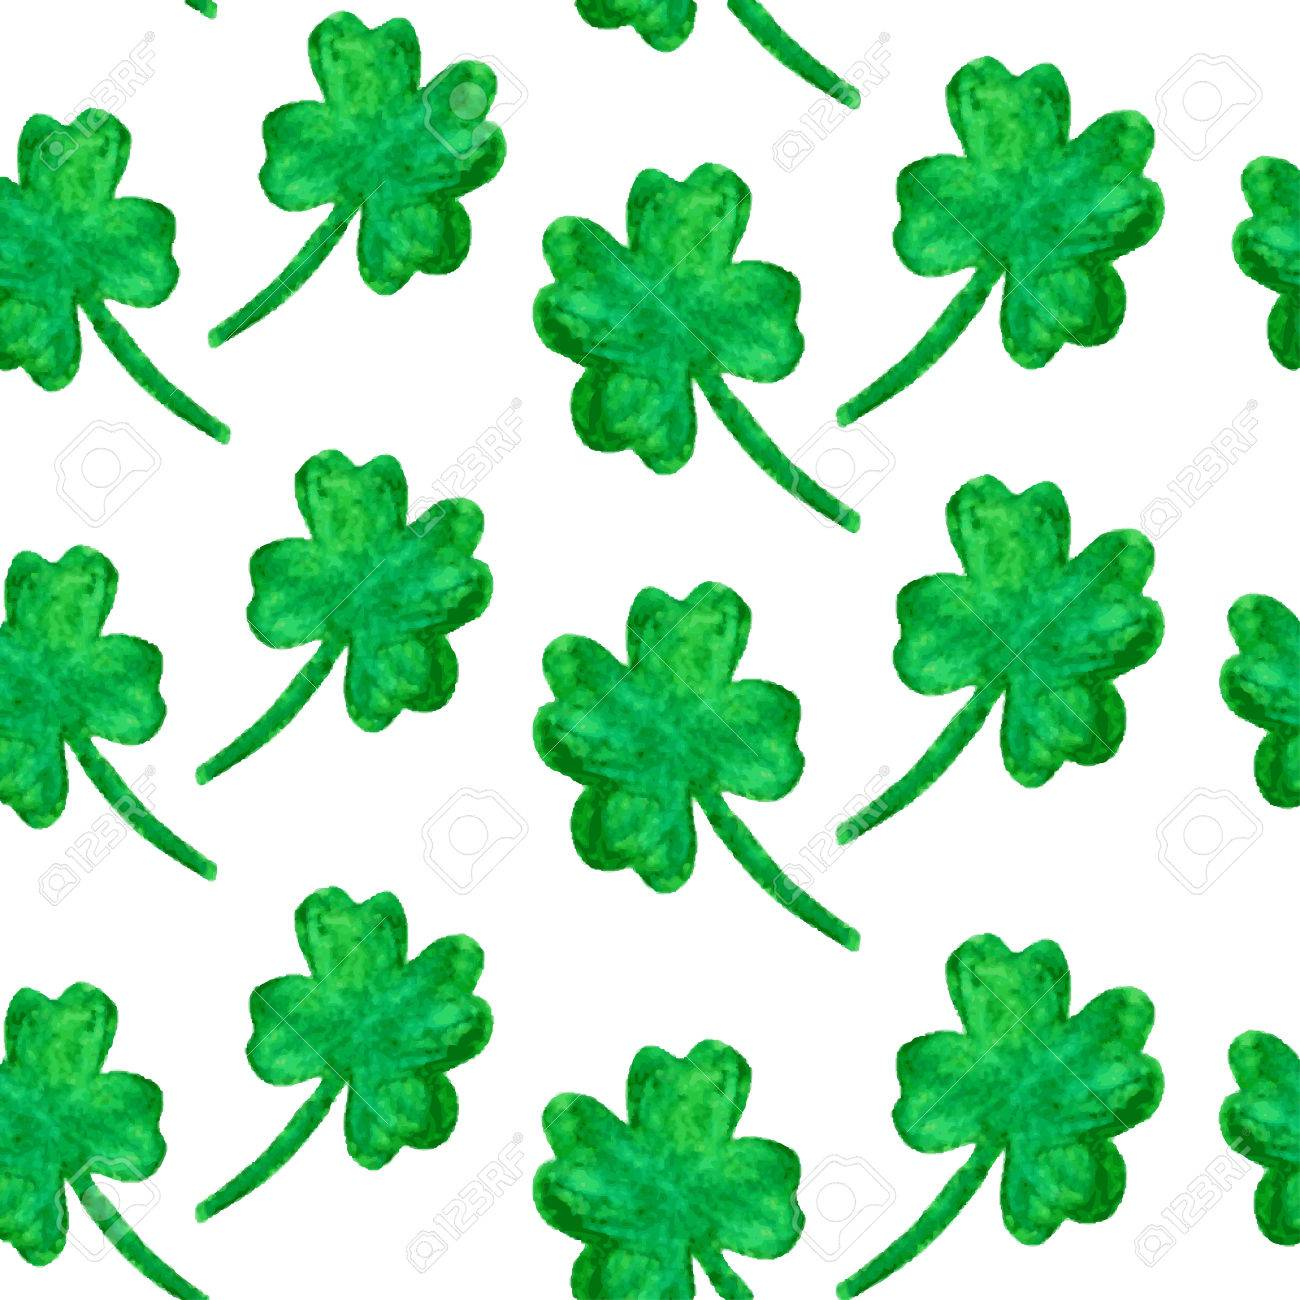 elegant seamless pattern with watercolor painted four leaf clovers